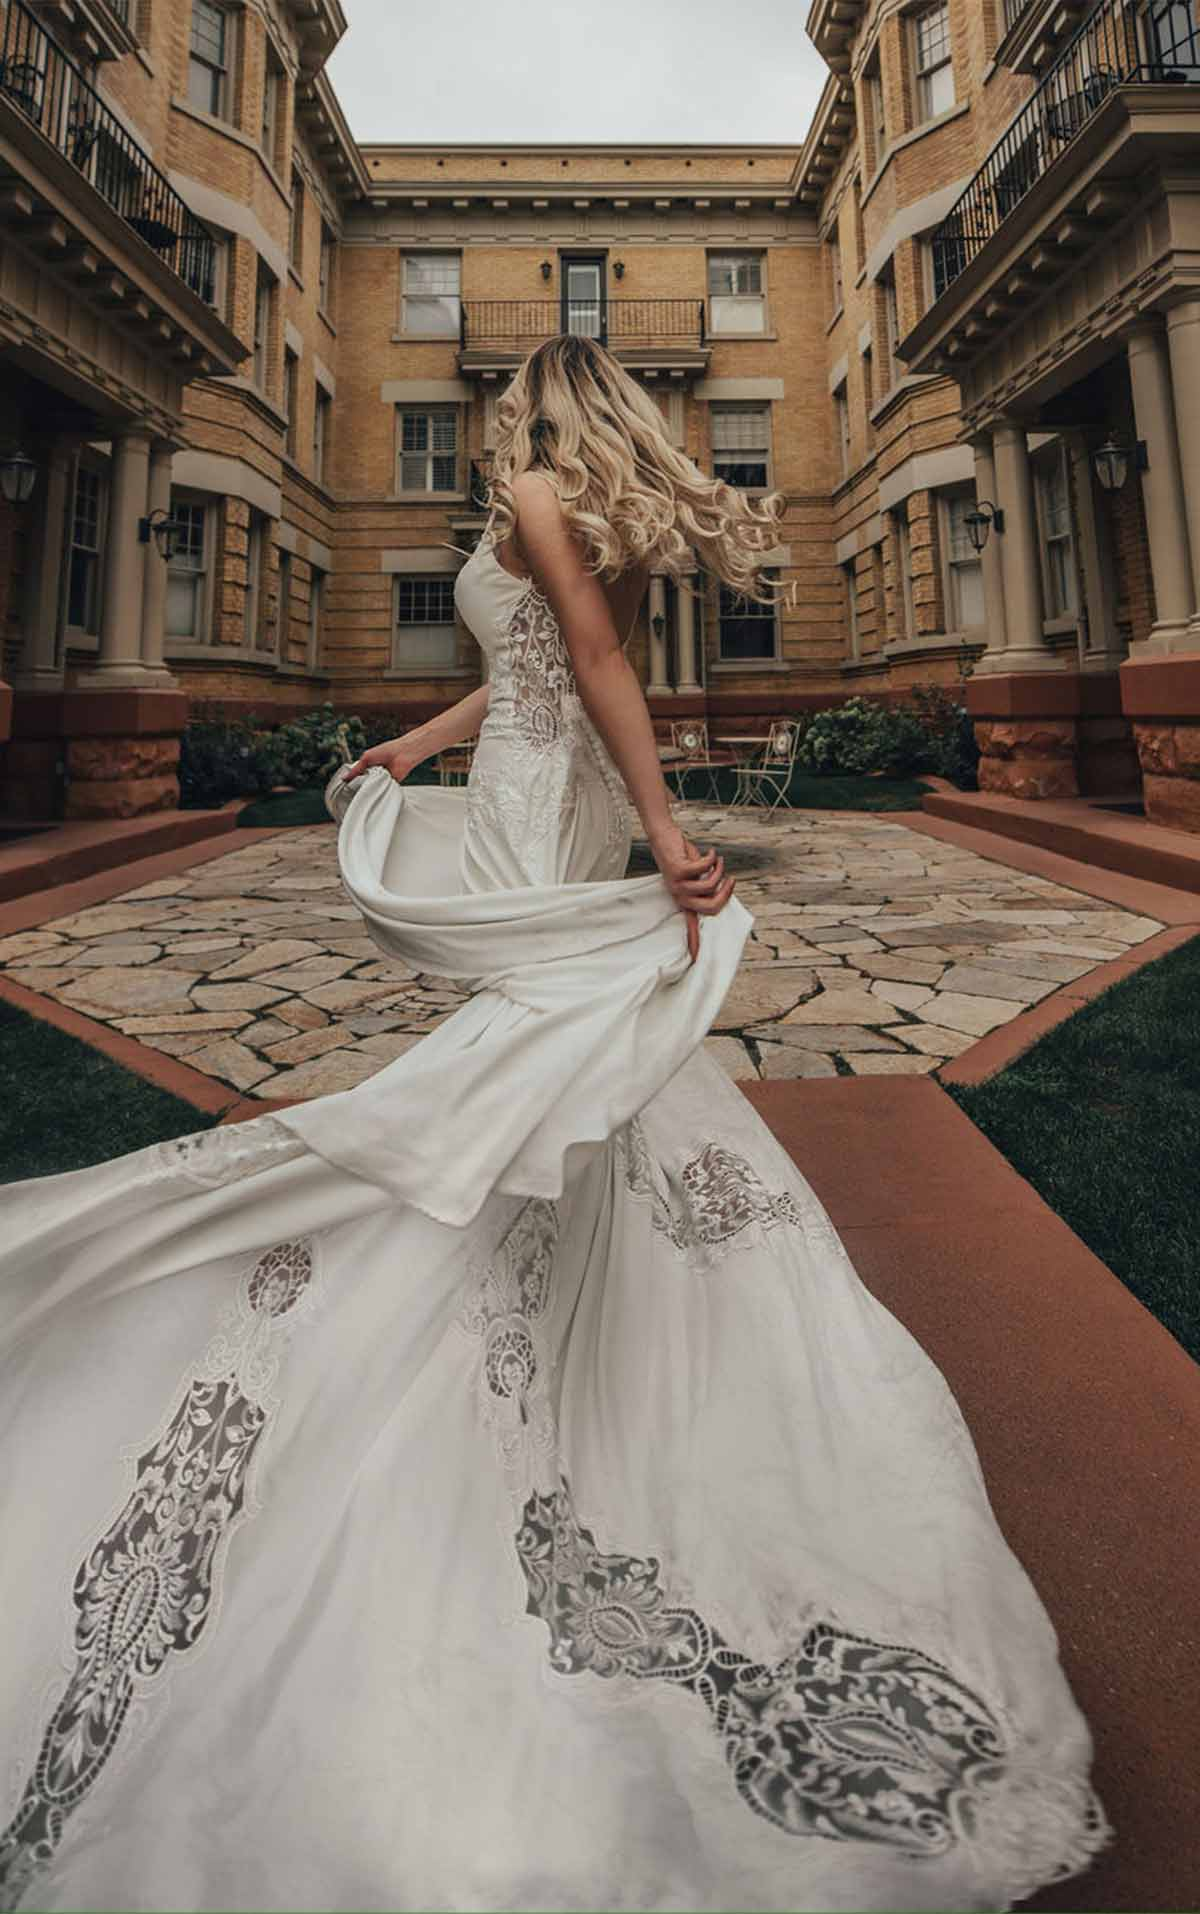 Delta Embroidered Boho Wedding Dress with Textured Lace and Plunging Sweetheart Neckline by All Who Wander